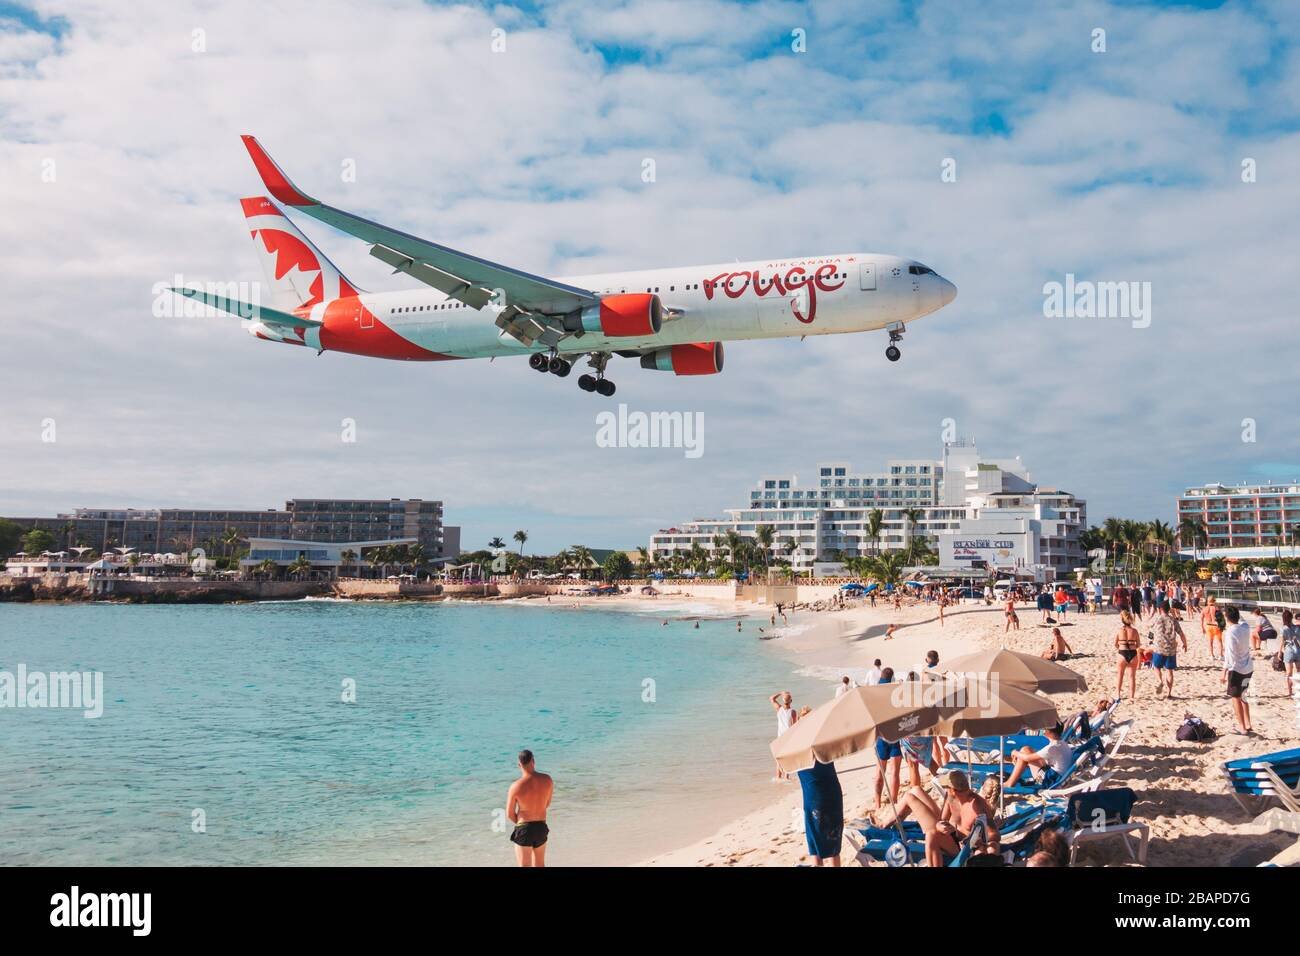 An Air Canada Rouge Boeing 767 comes in to land over tourists on Maho Beach, St. Maarten Stock Photo